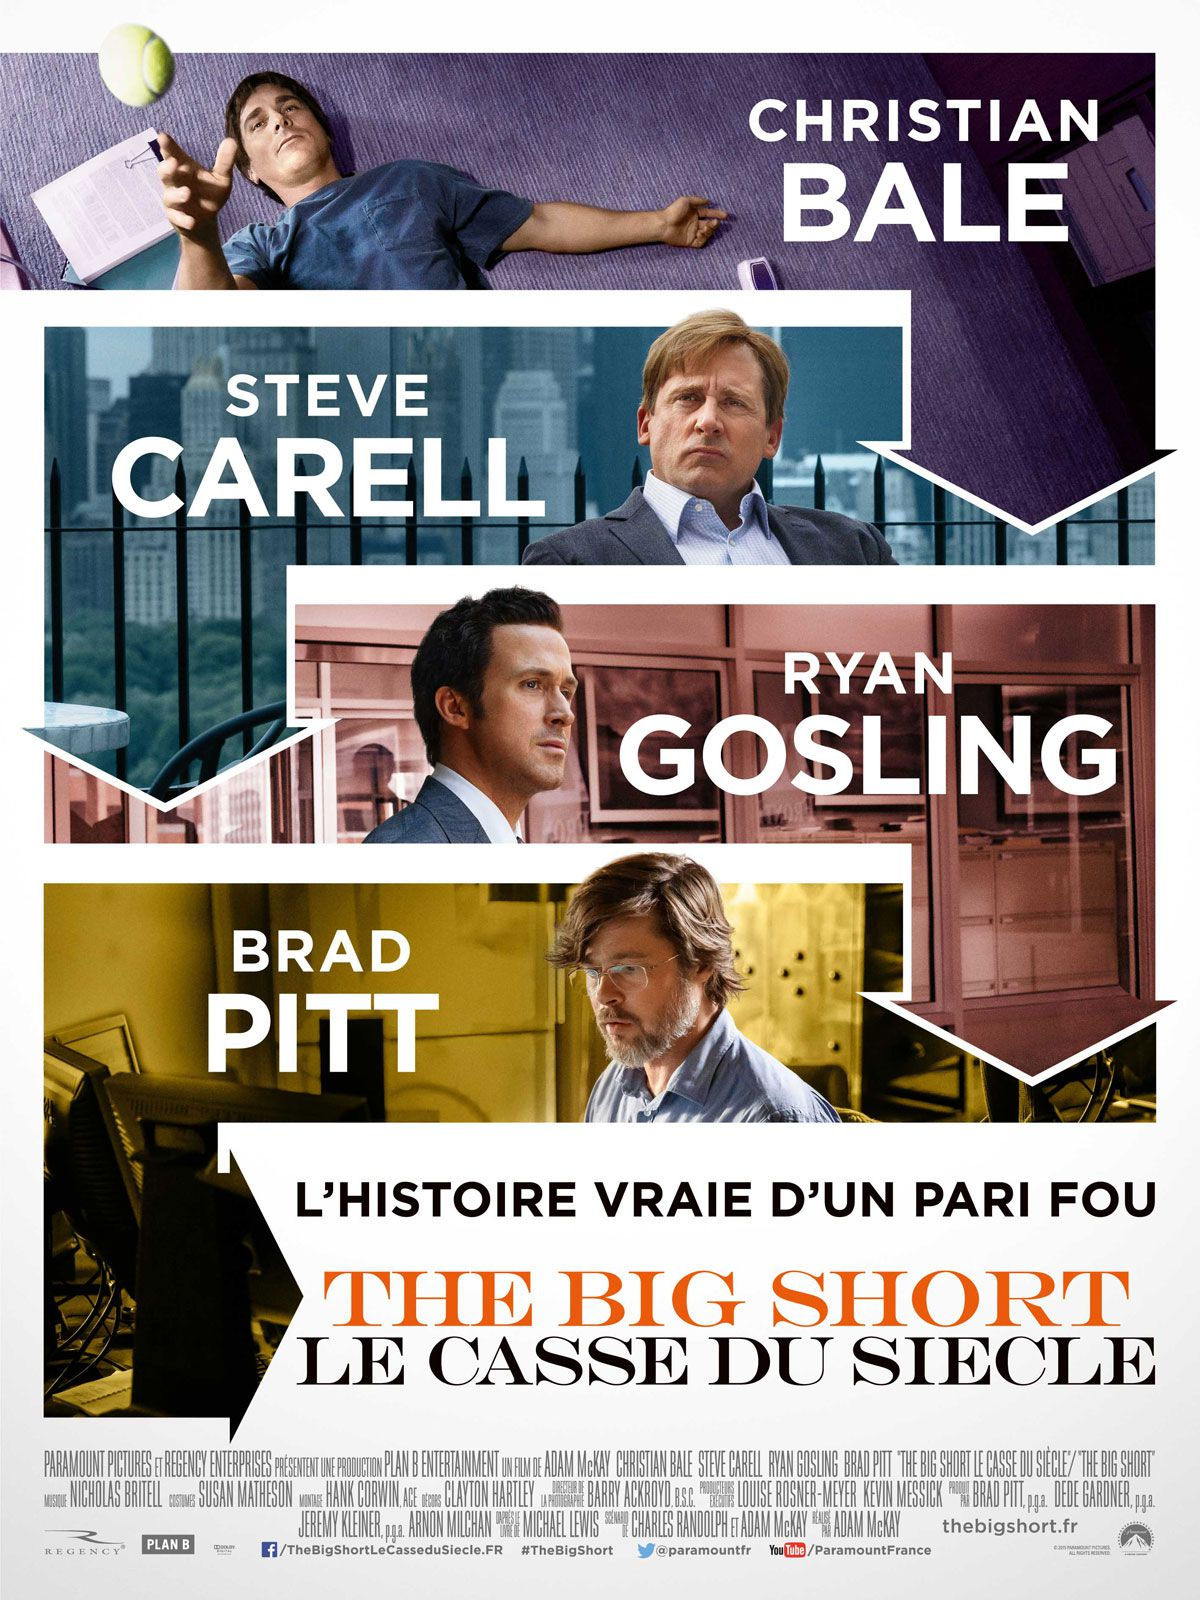 The Big Short : Le Casse du siècle - Film (2015) streaming VF gratuit complet